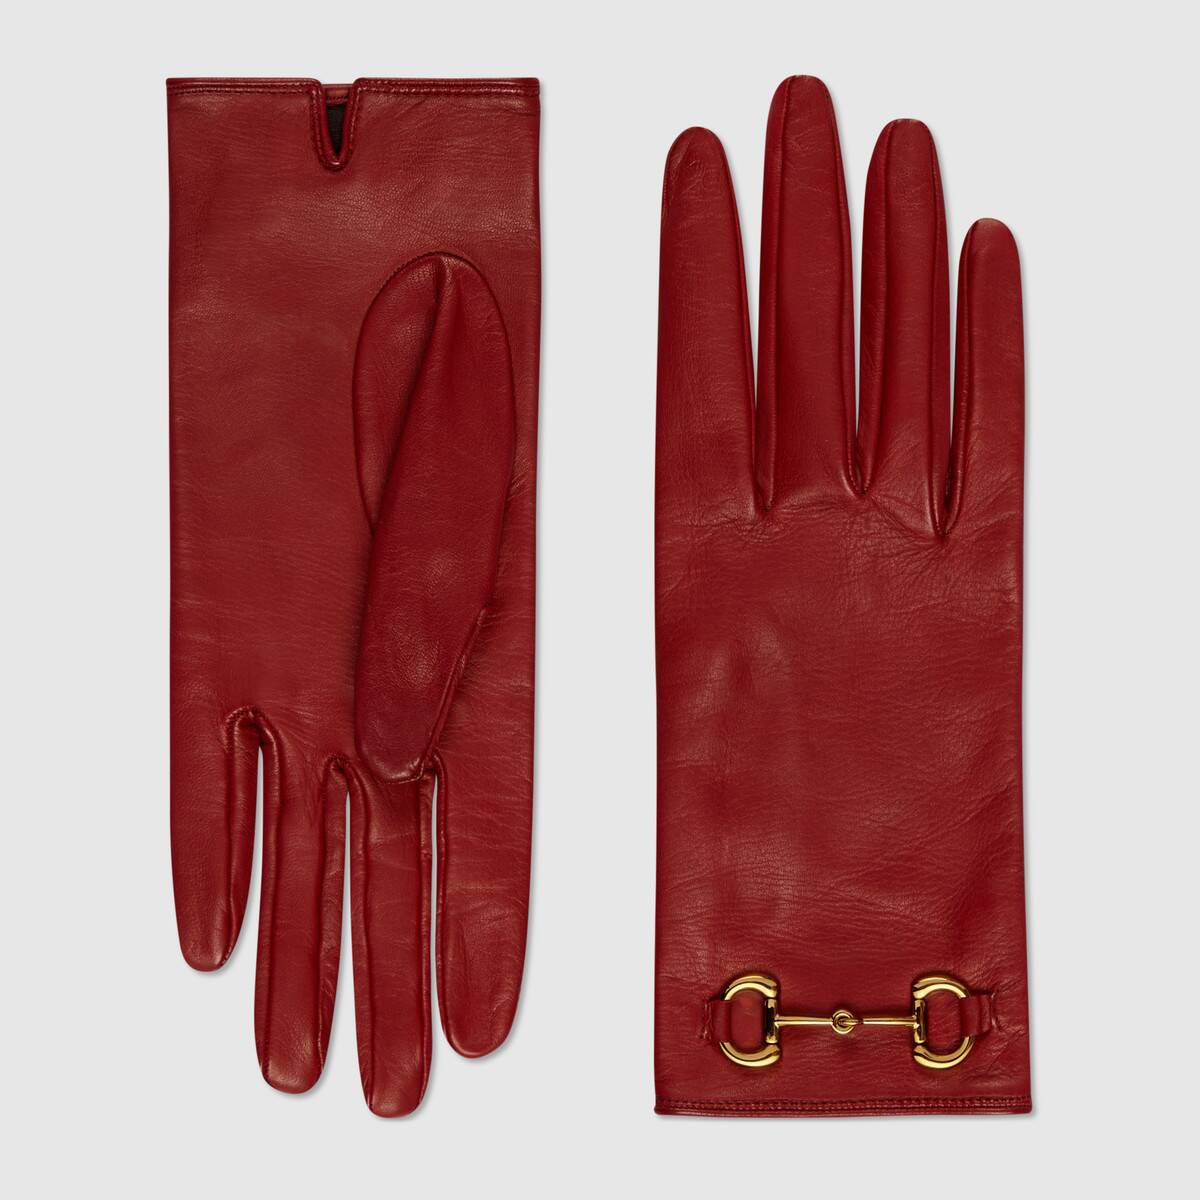 Inauguration Fashion 2021: Gucci red driving gloves $590